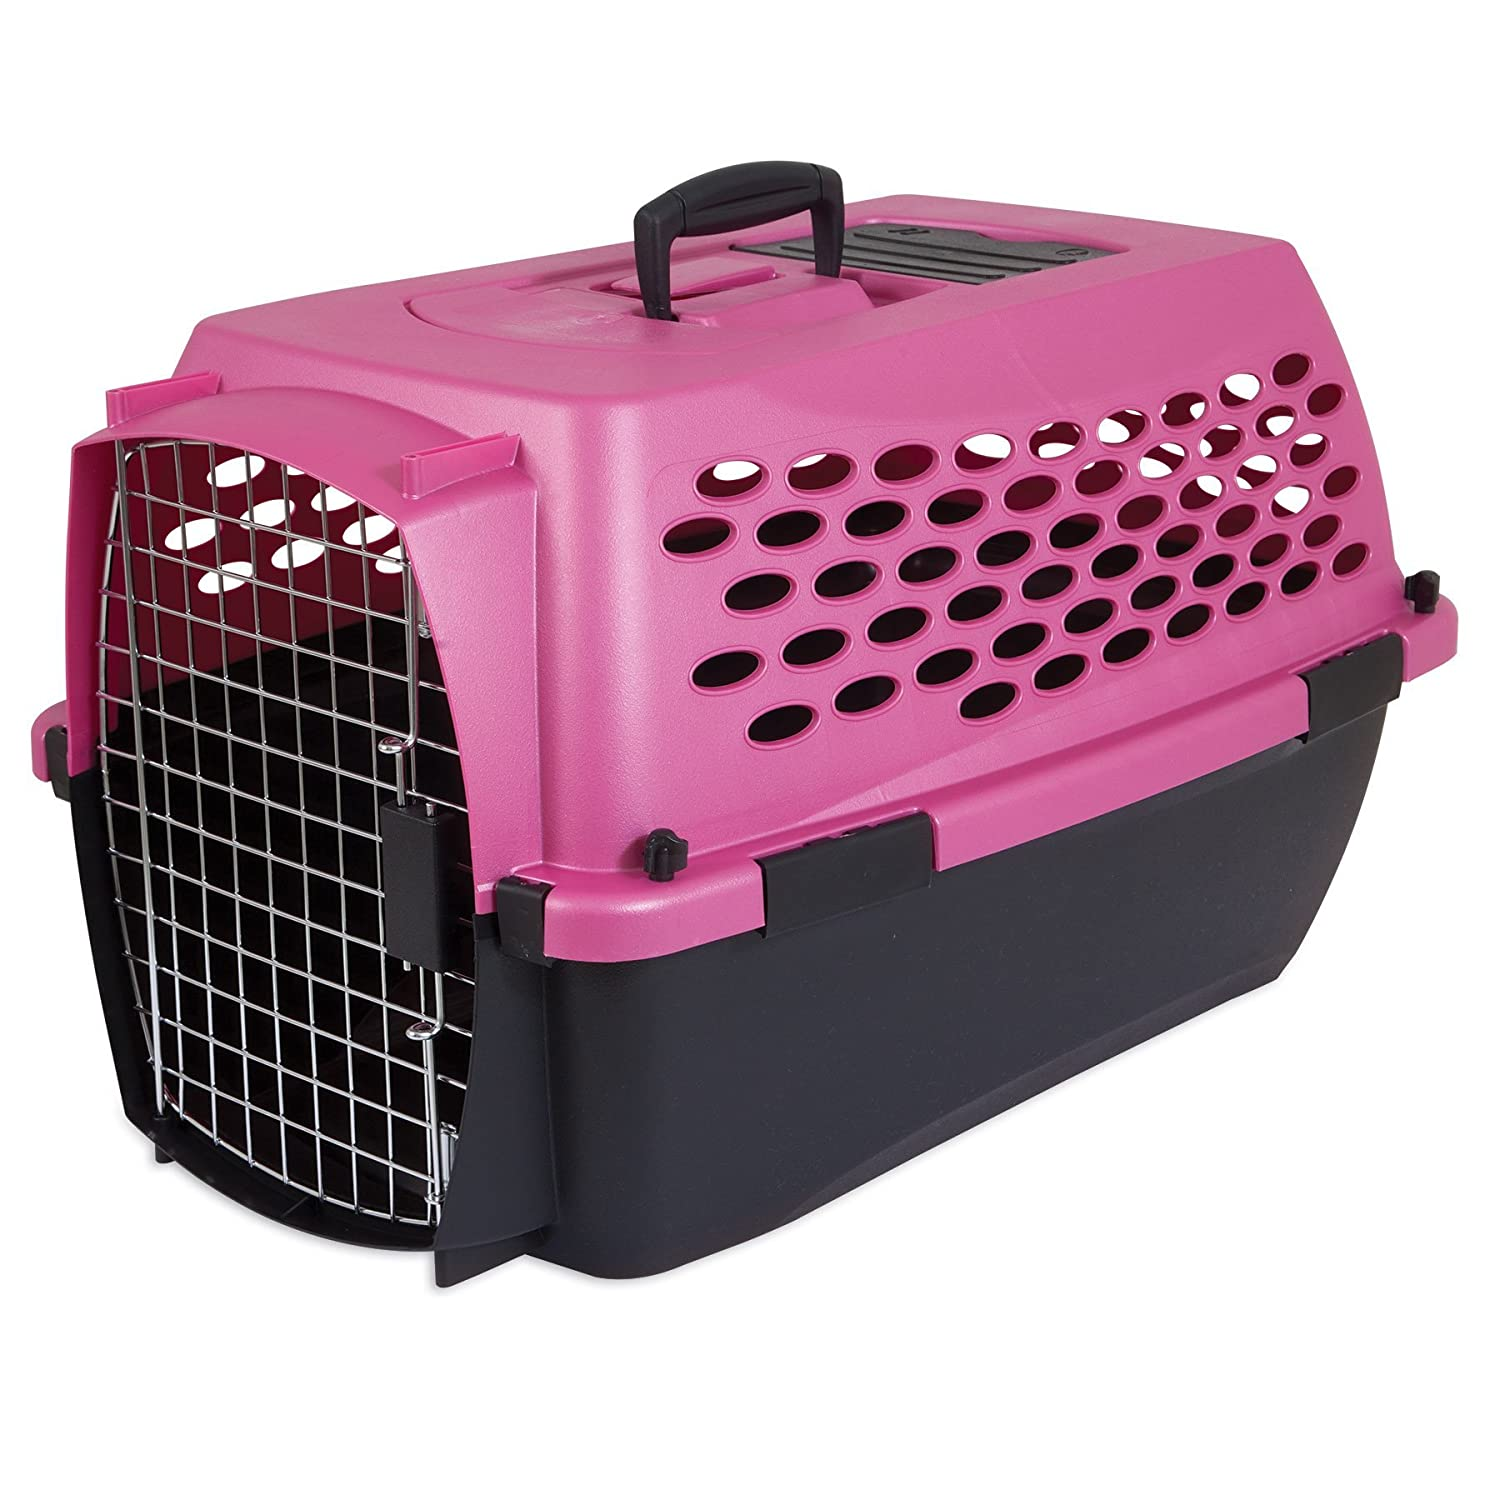 amazoncom  petmate fashion vari kennel lbs dark pink  - amazoncom  petmate fashion vari kennel lbs dark pinkblack  dogkennel  pet supplies